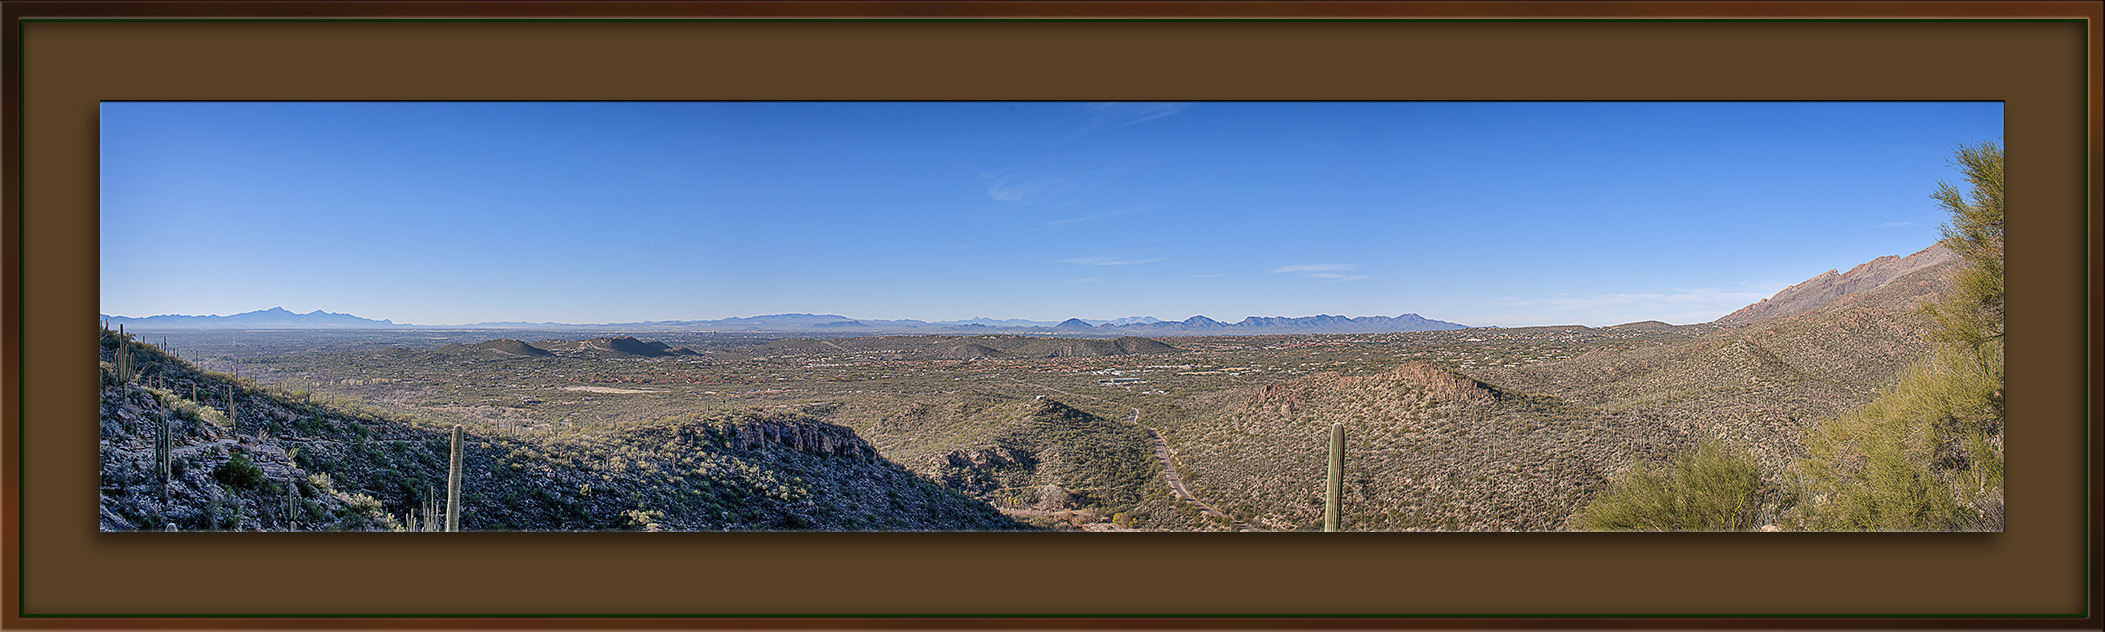 lower-sabino-canyon-from-phoneline_panorama1-1-blog